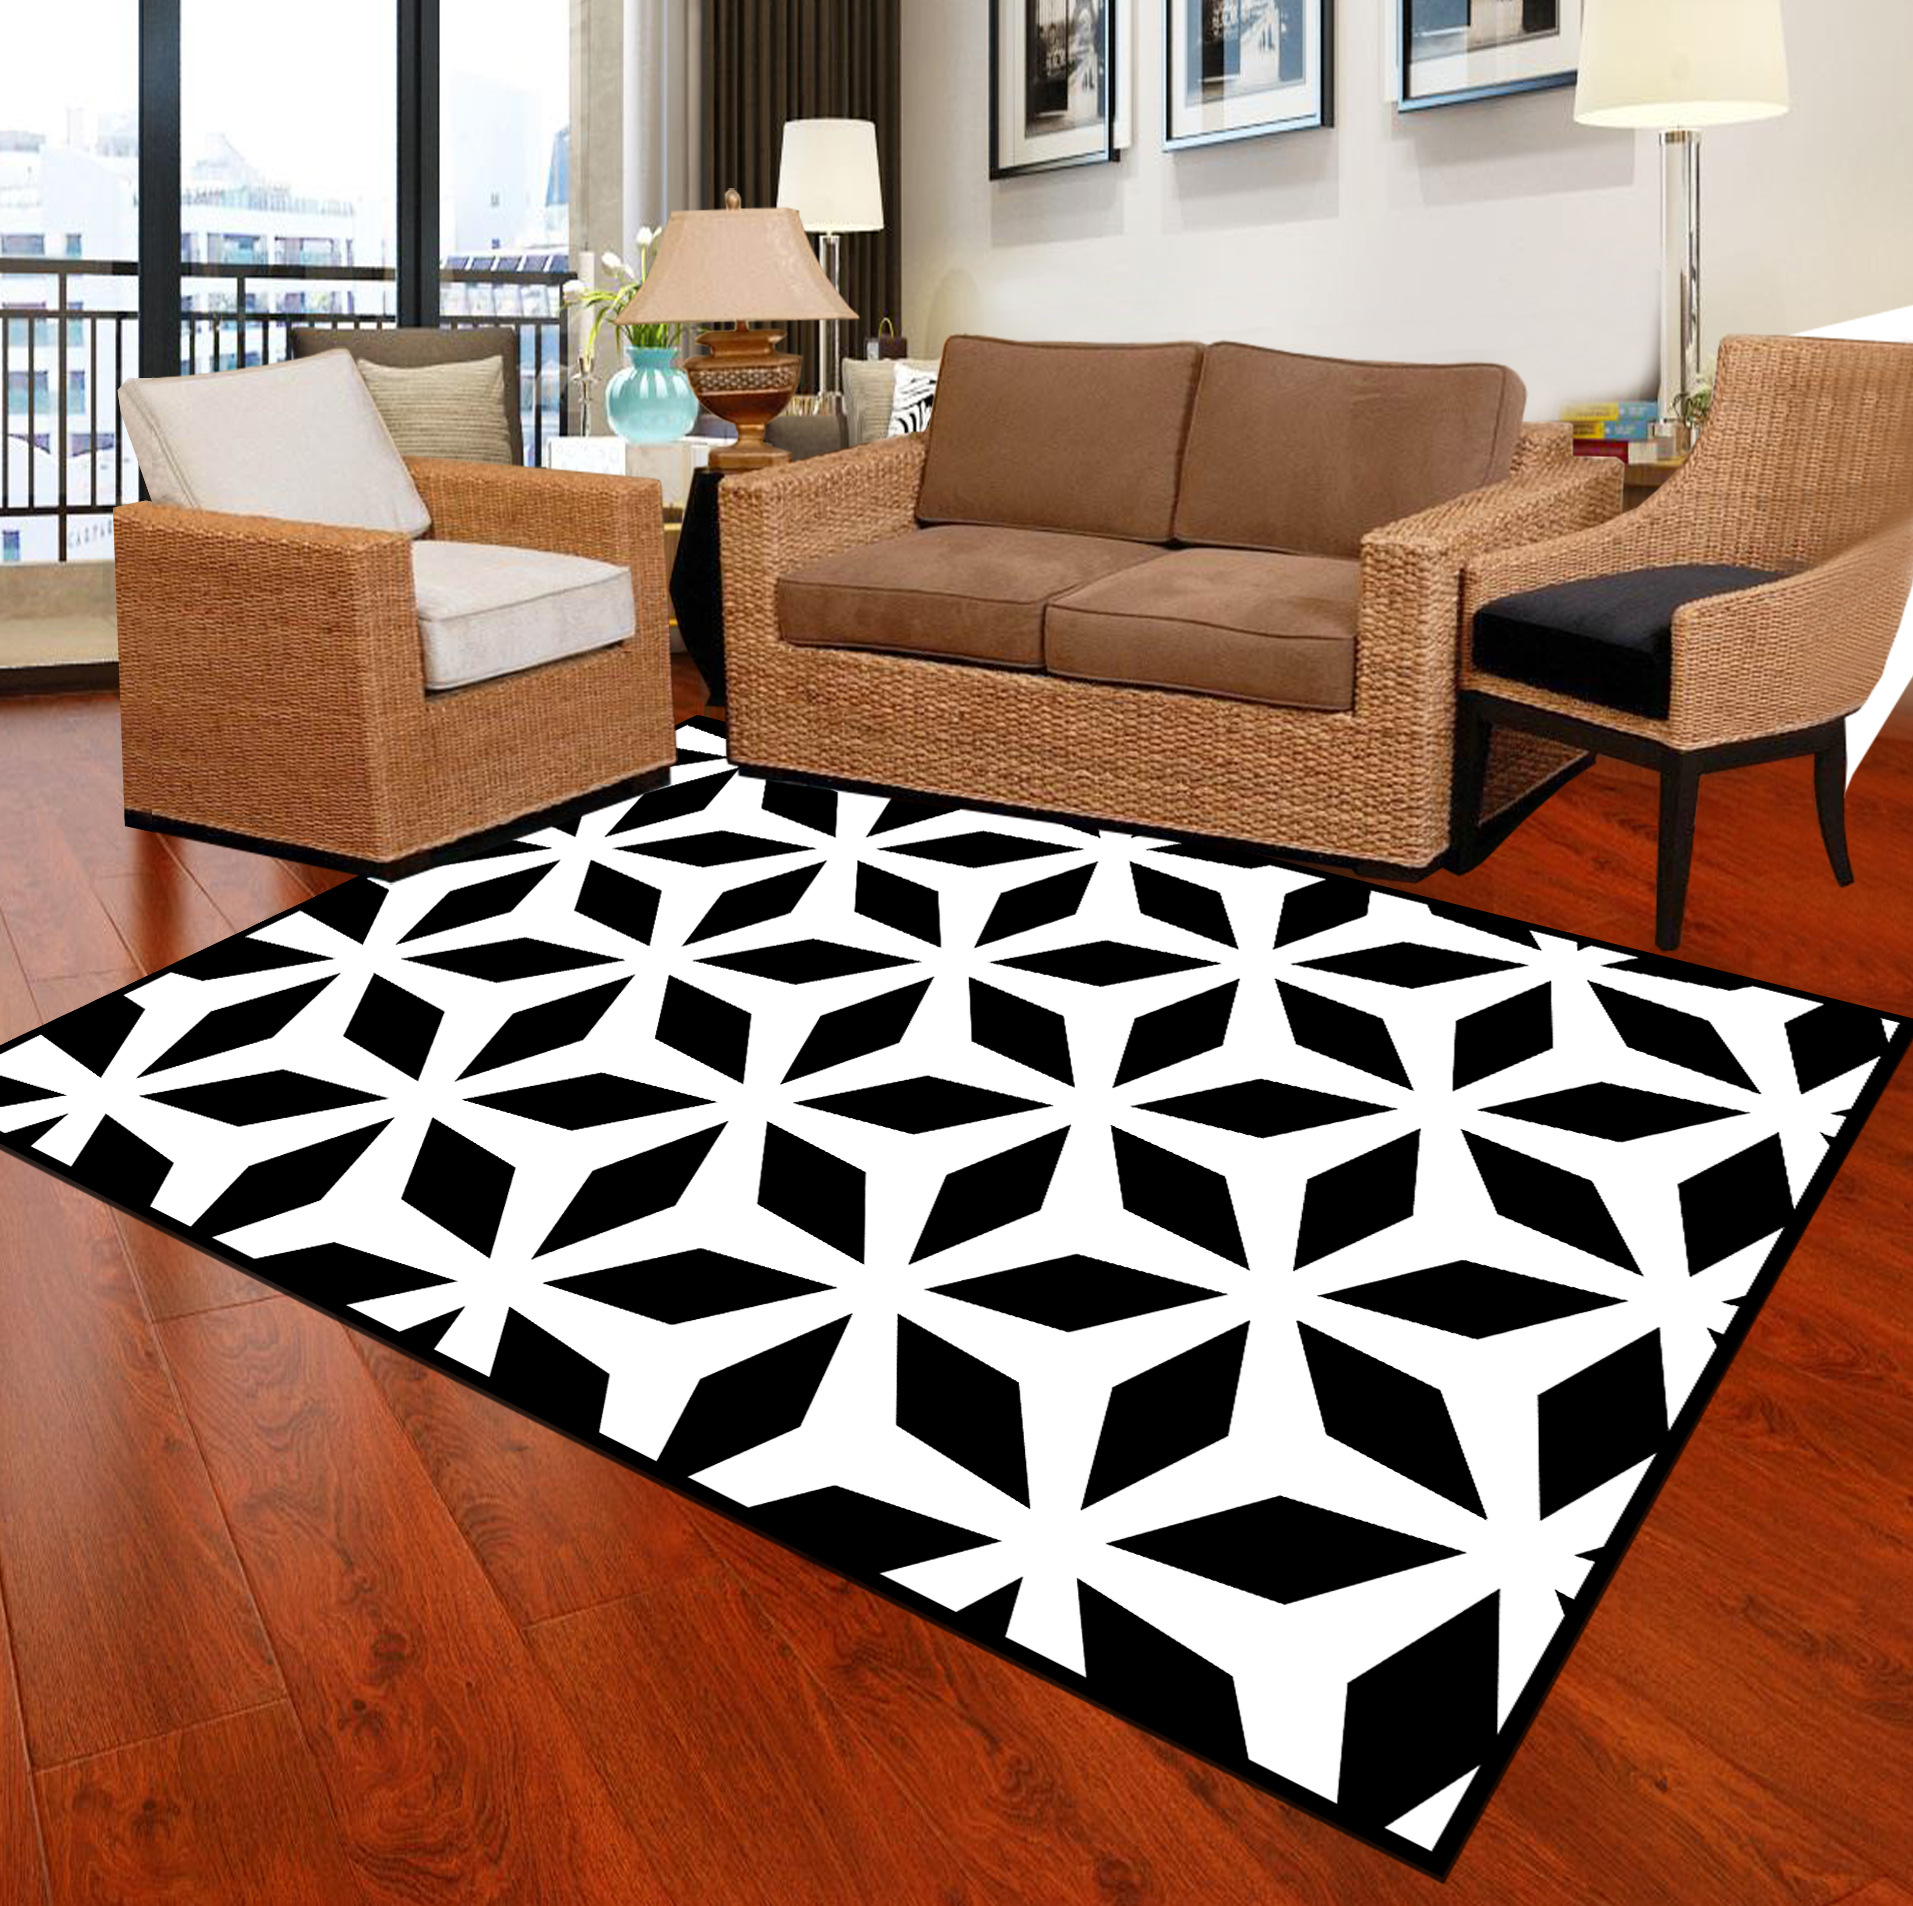 Zeegle Black White Carpets For Living Room Soft Carpets Kids Room Bedroom Carpets Bedside Rugs Anti-slip Office Chair Floor Mats